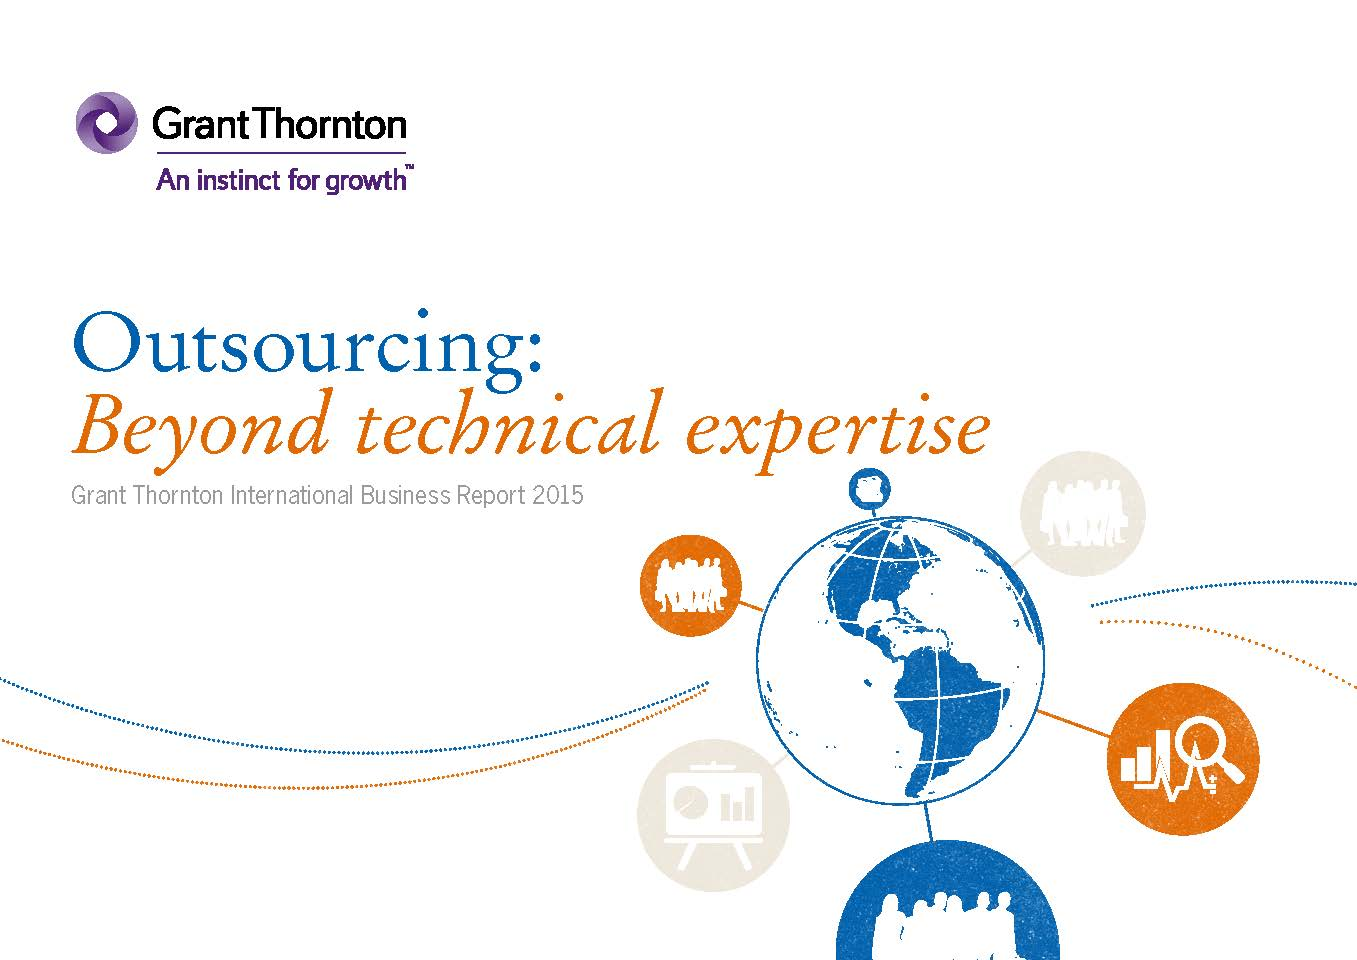 Outsourcing - Beyond technical expertise